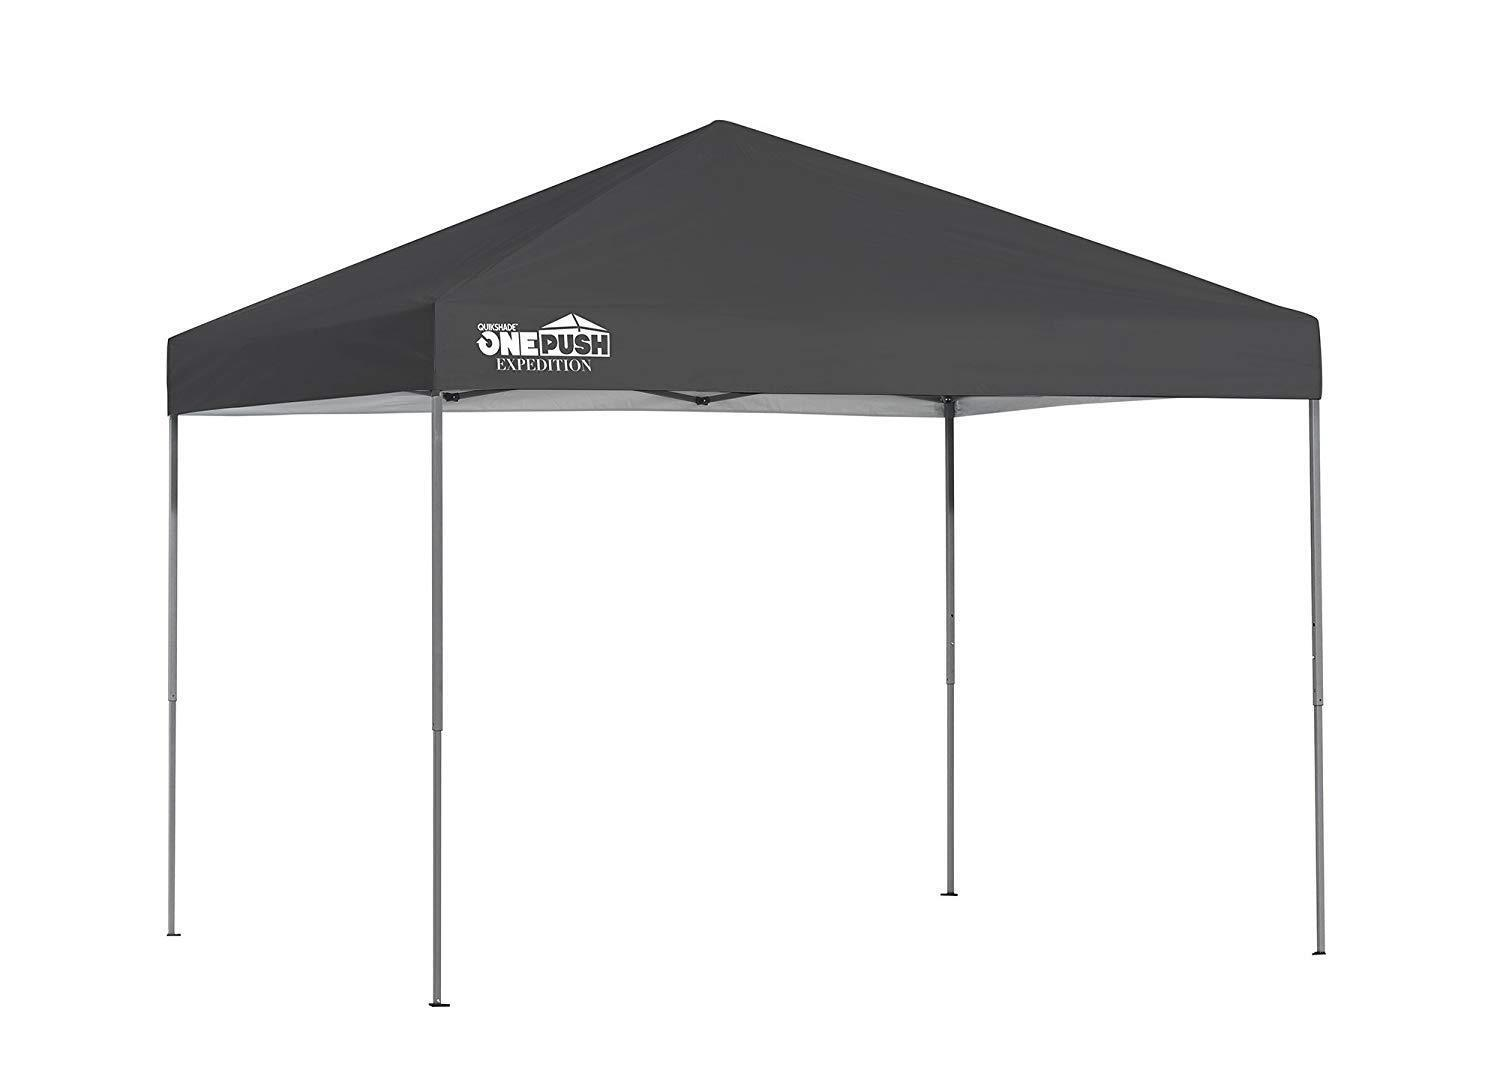 Details about Quik Shade Expedition One Push 8 X 10 Ft  Straight Leg Canopy  Charcoal